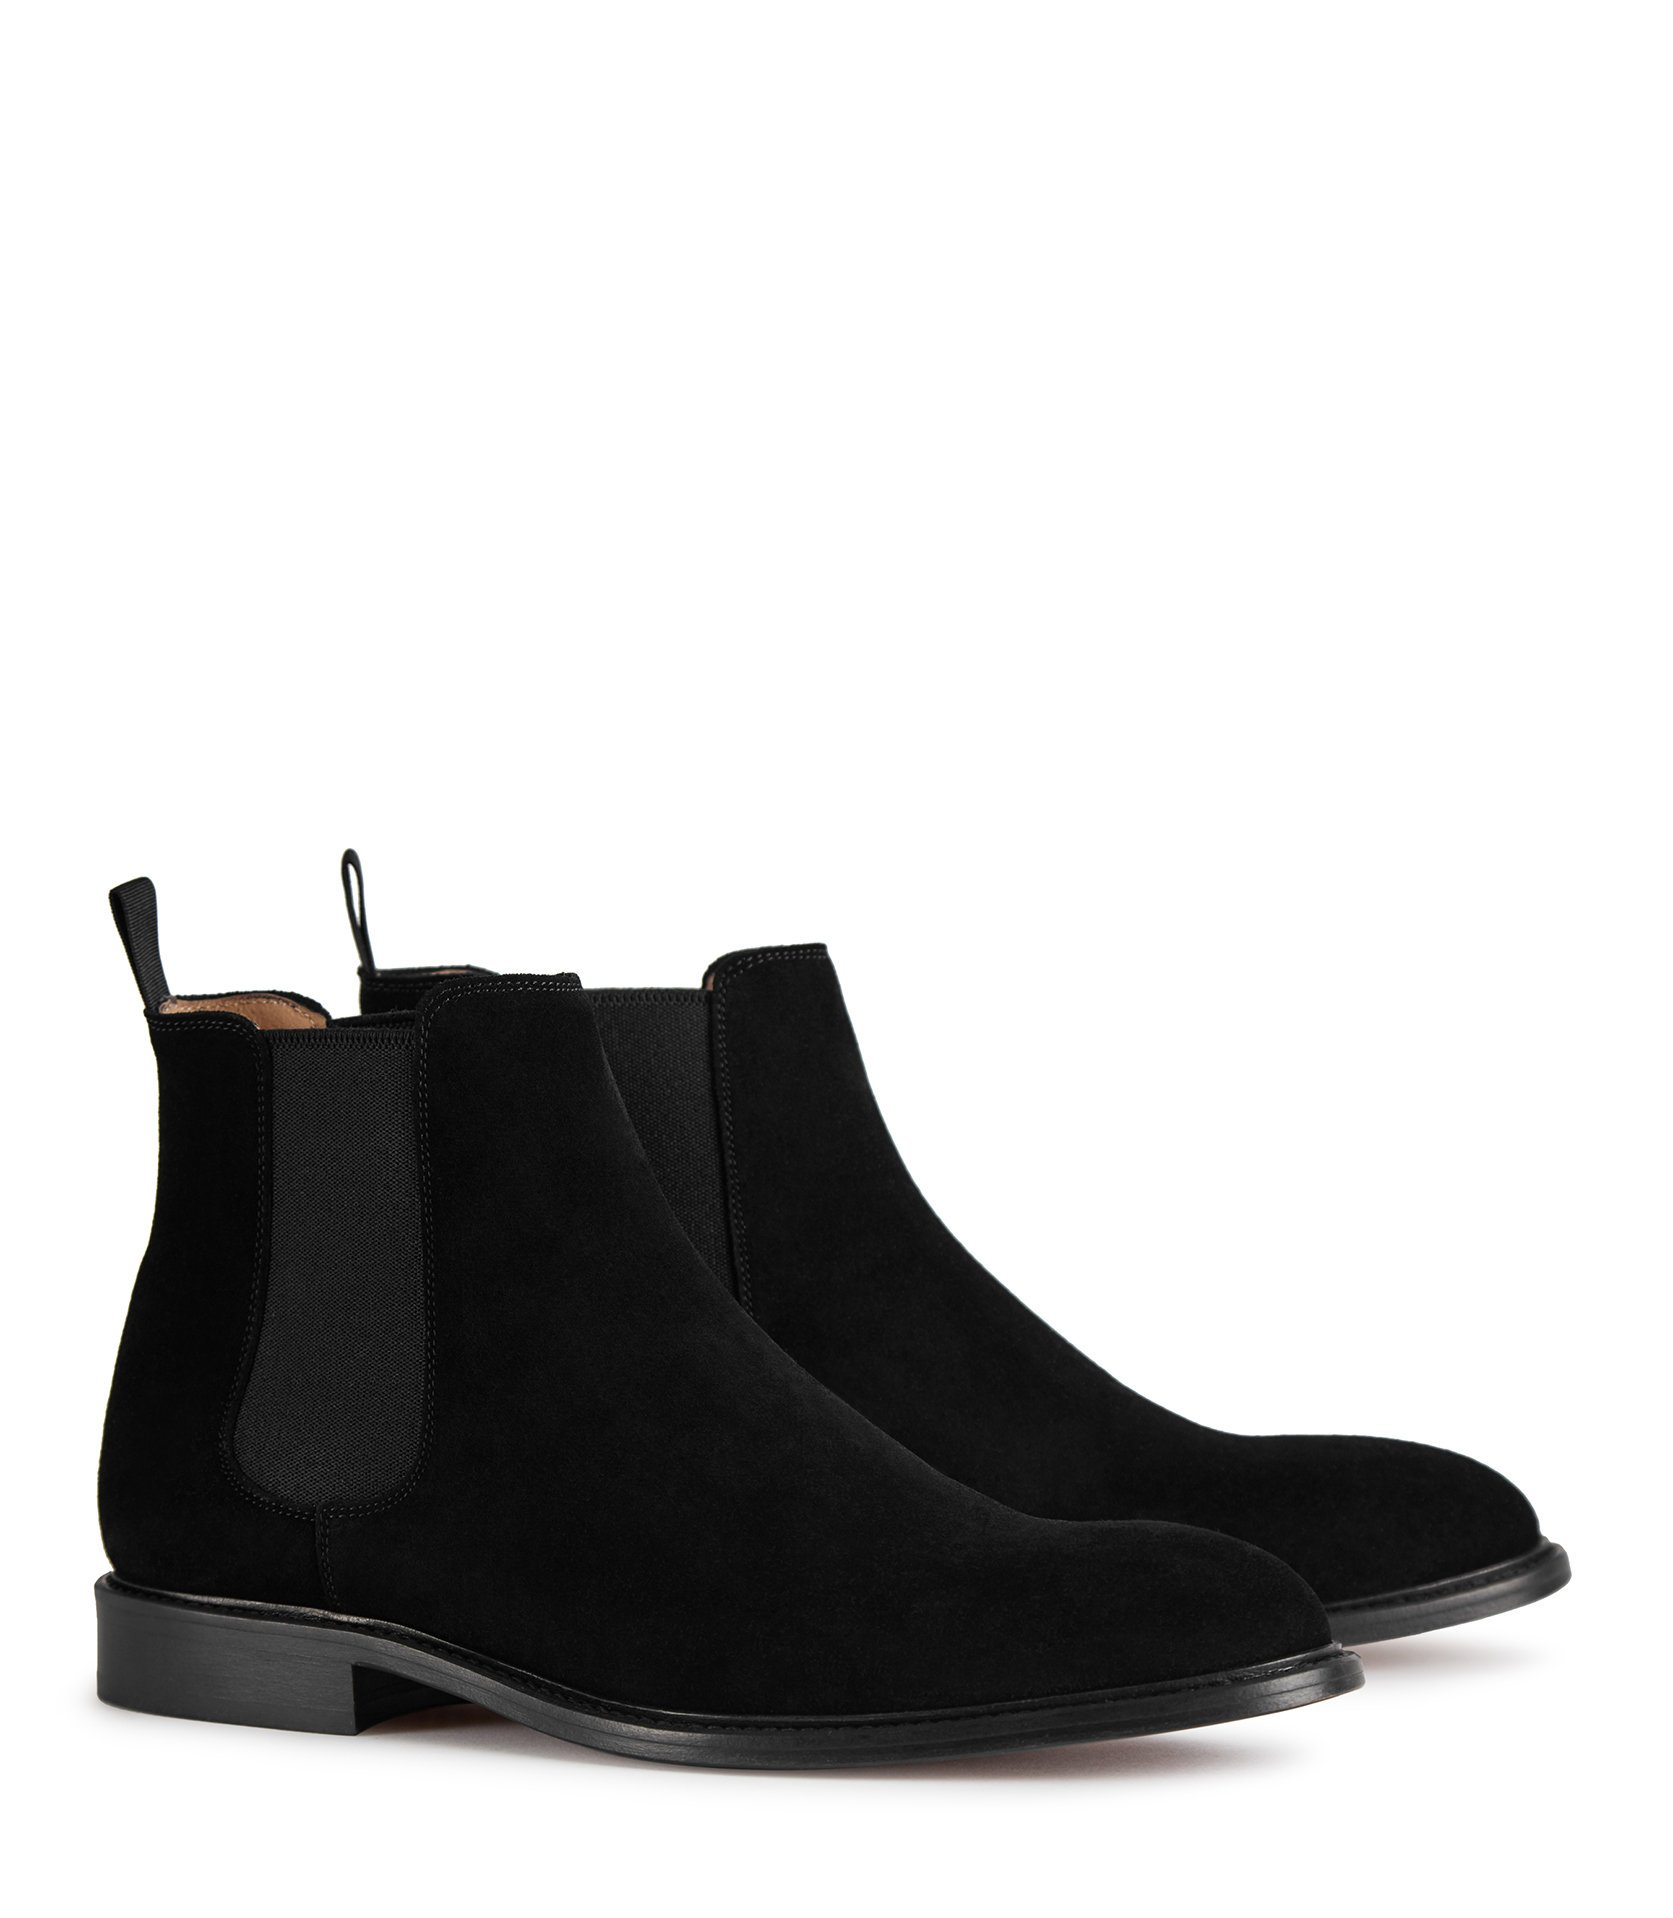 Reiss Black Suede Chelsea Boots